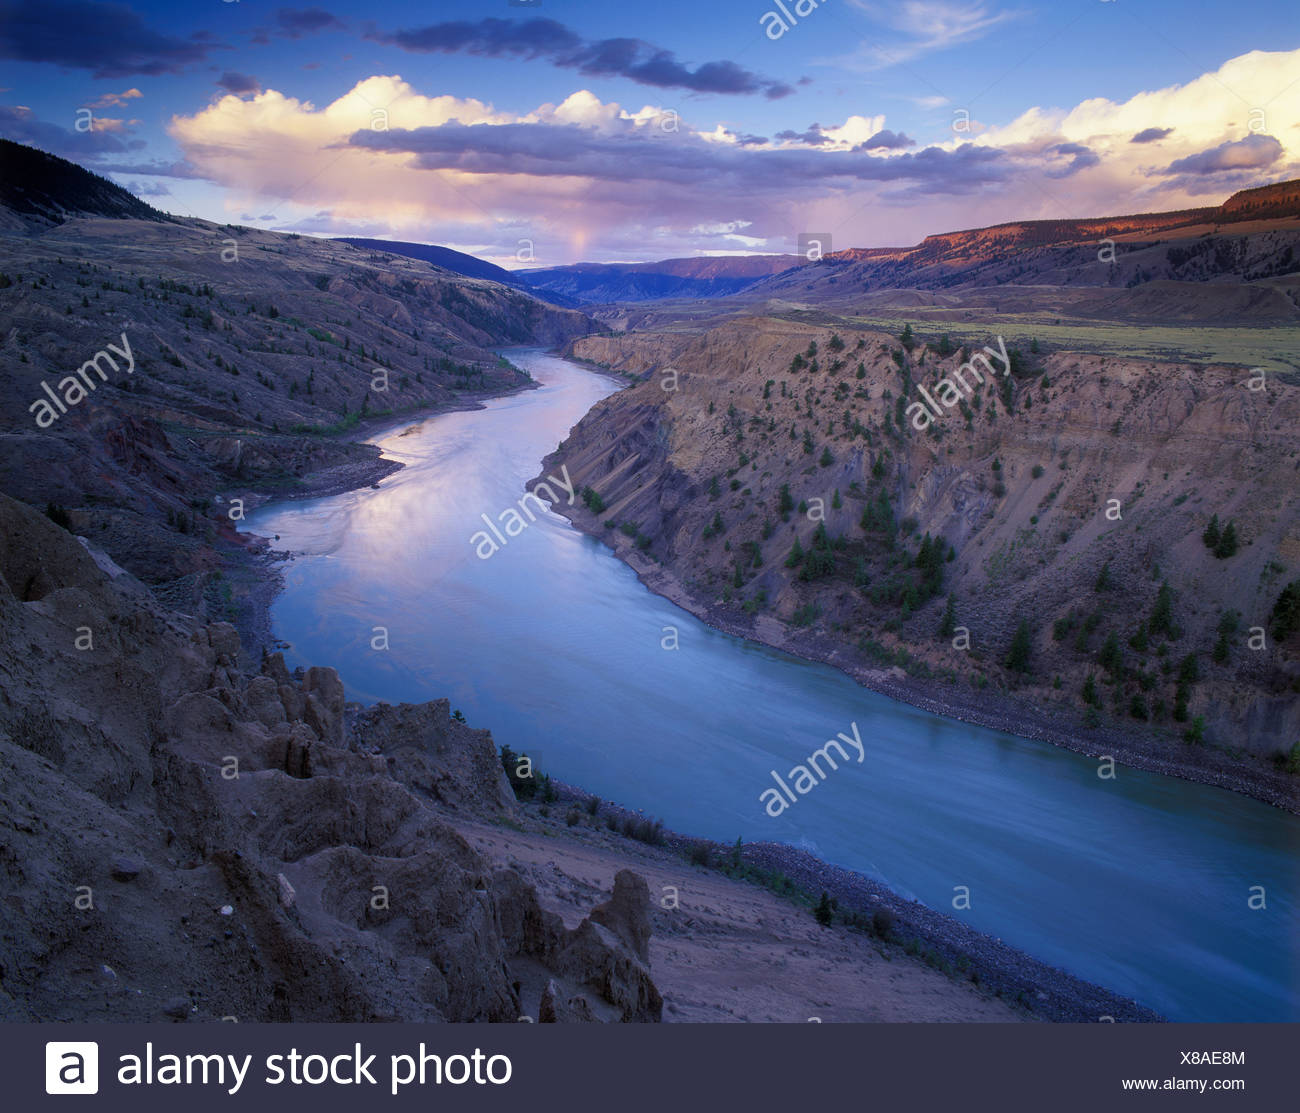 erosion on banks of the Fraser River, Churn Creek protected area, British Columbia, Canada. Stock Photo